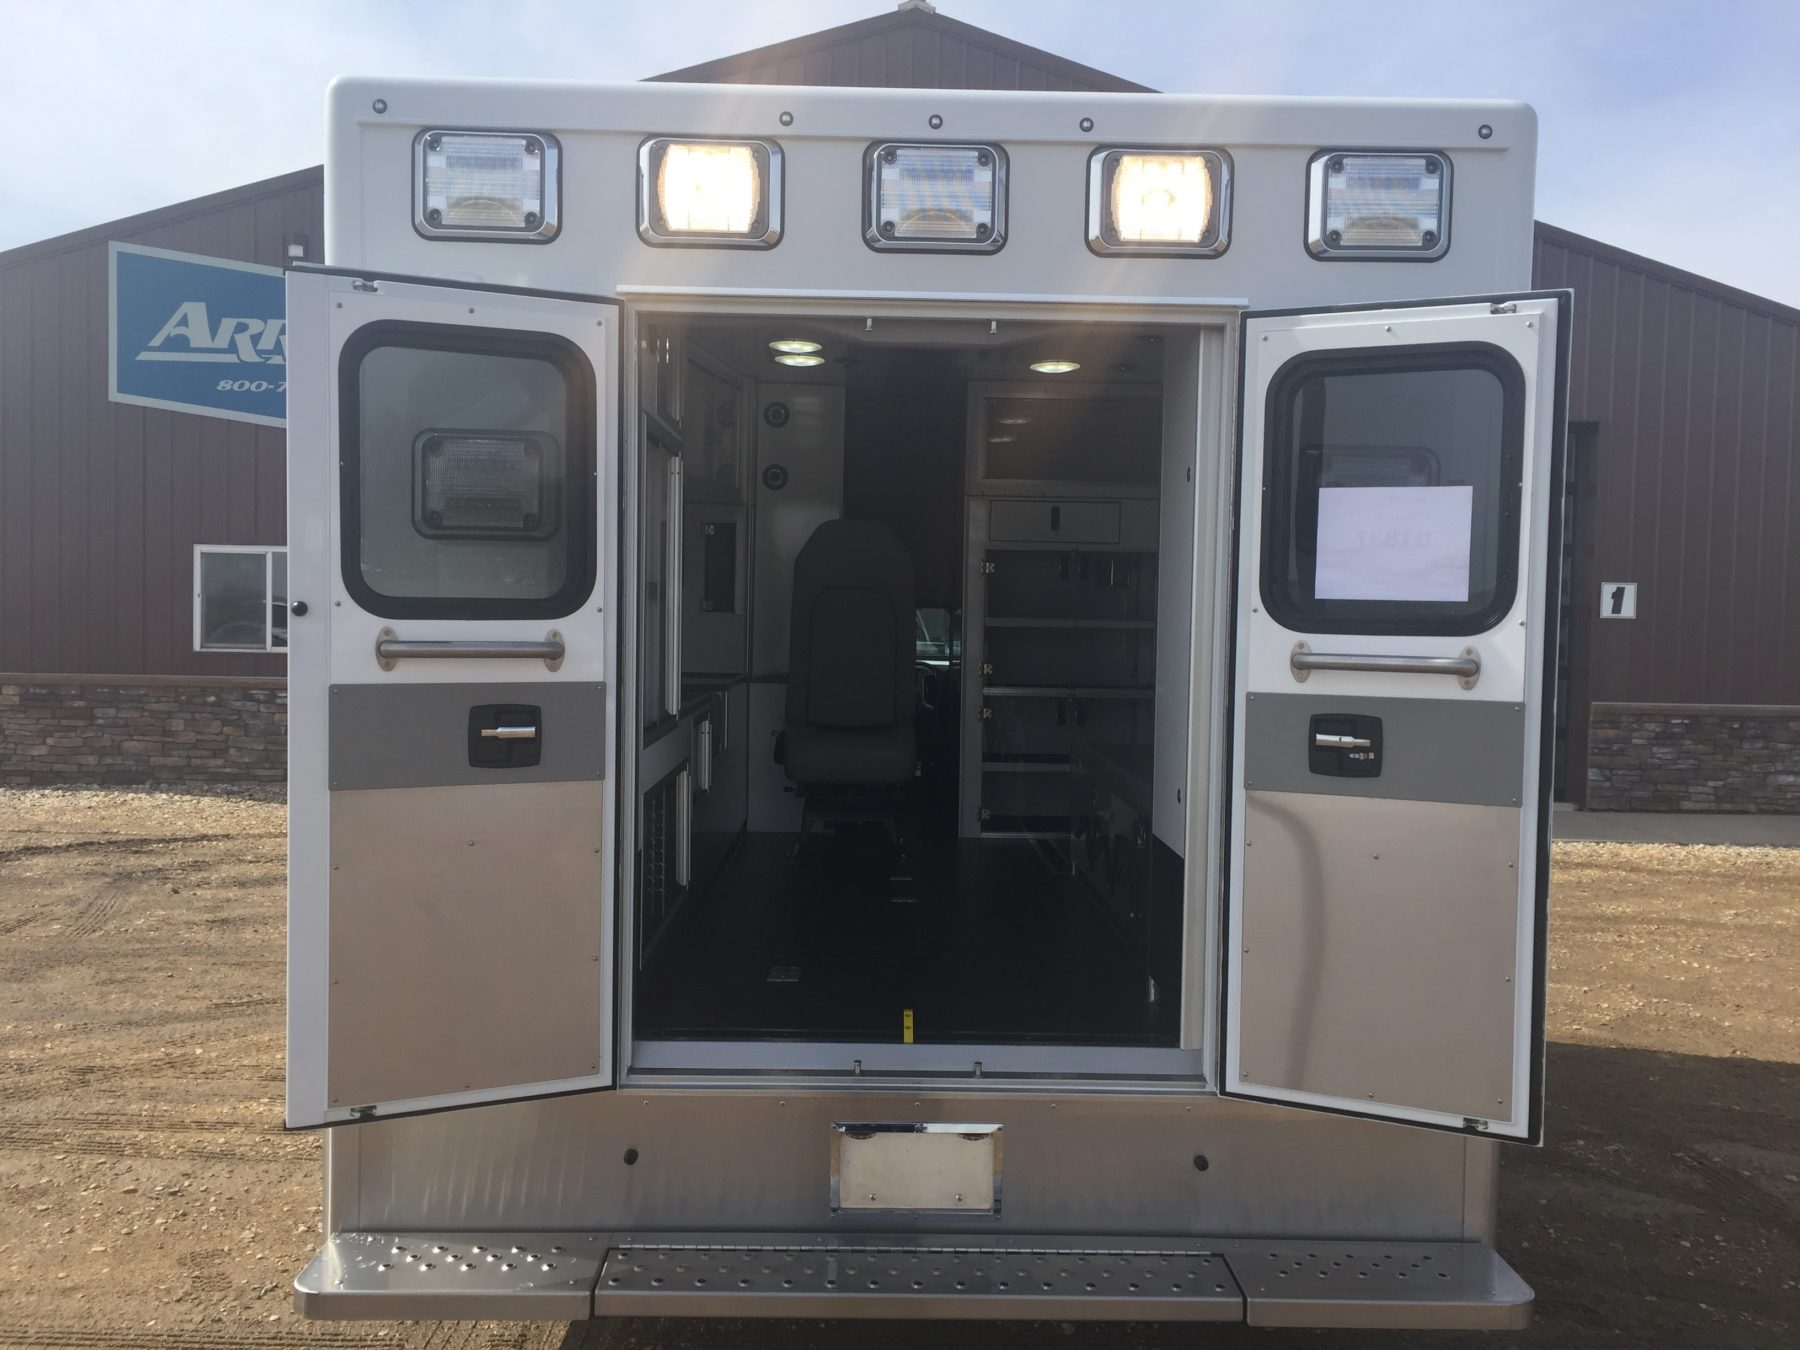 2019 Chevrolet K3500 4x4 Type 1 Ambulance For Sale – Picture 9